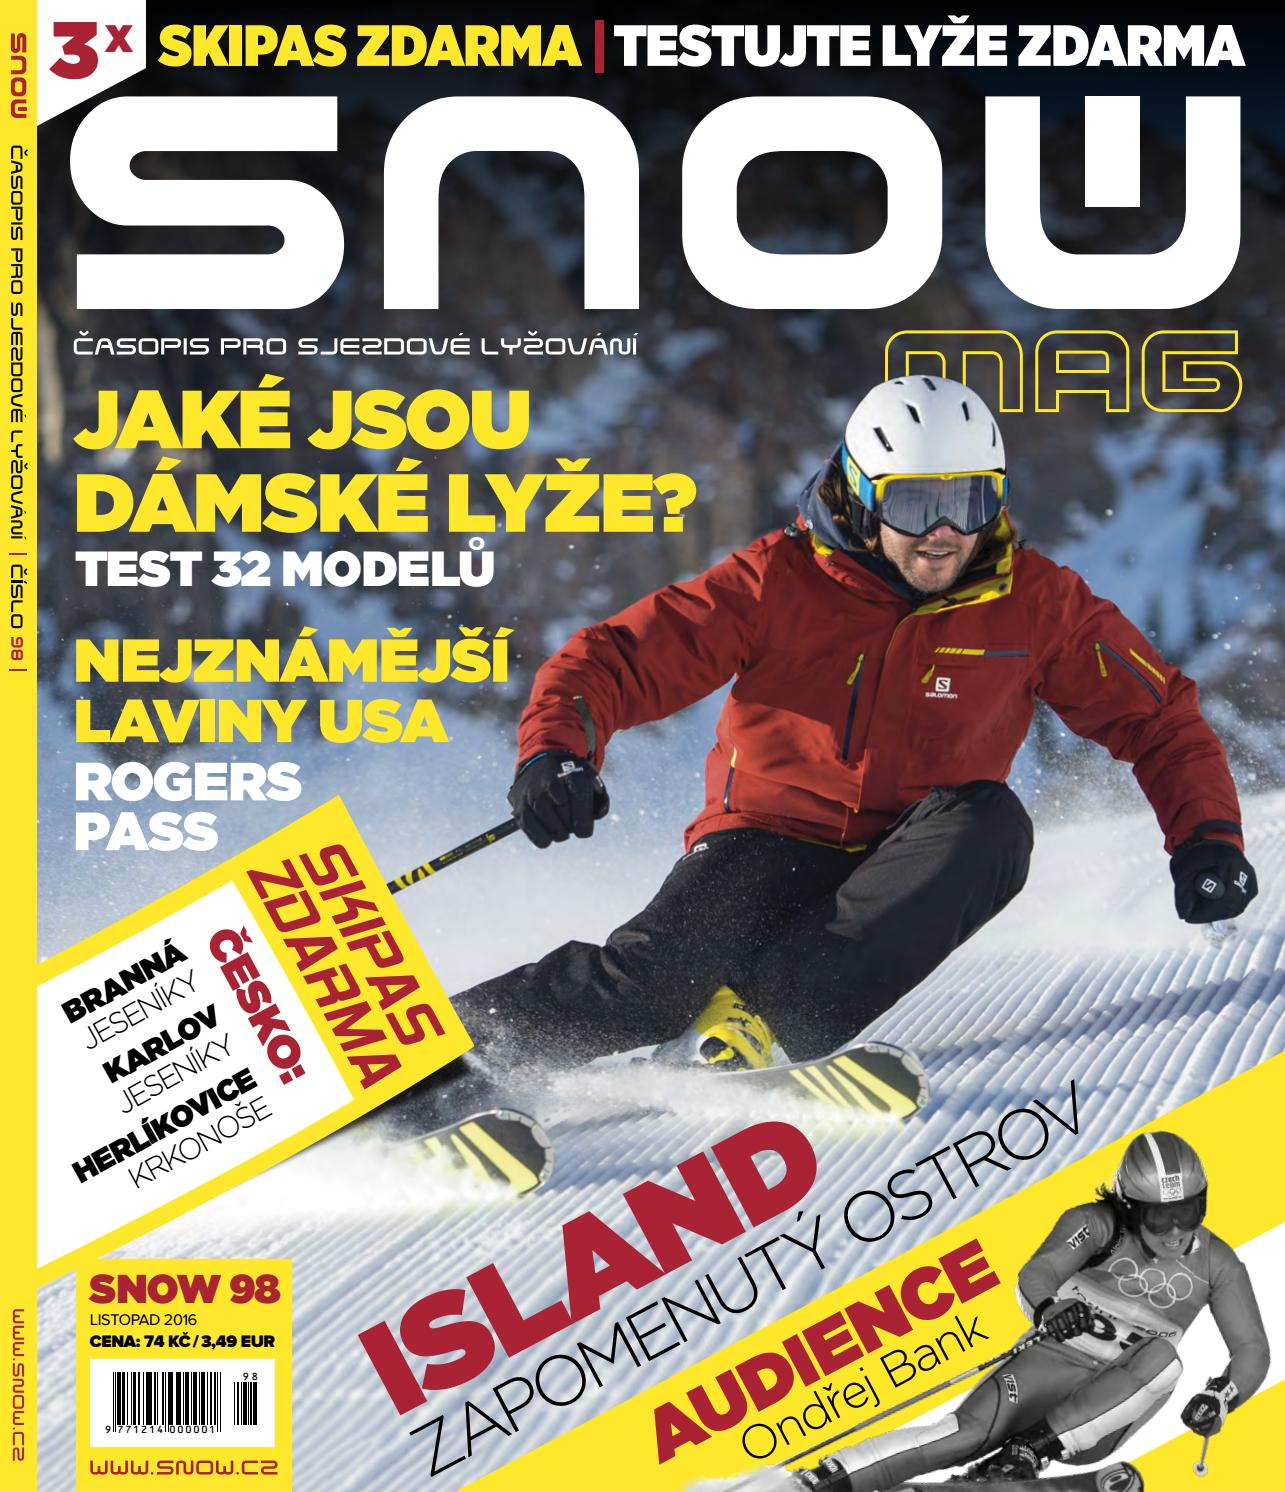 SNOW 98 - listopad 2016 by SNOW CZ s.r.o. - issuu 918563511a